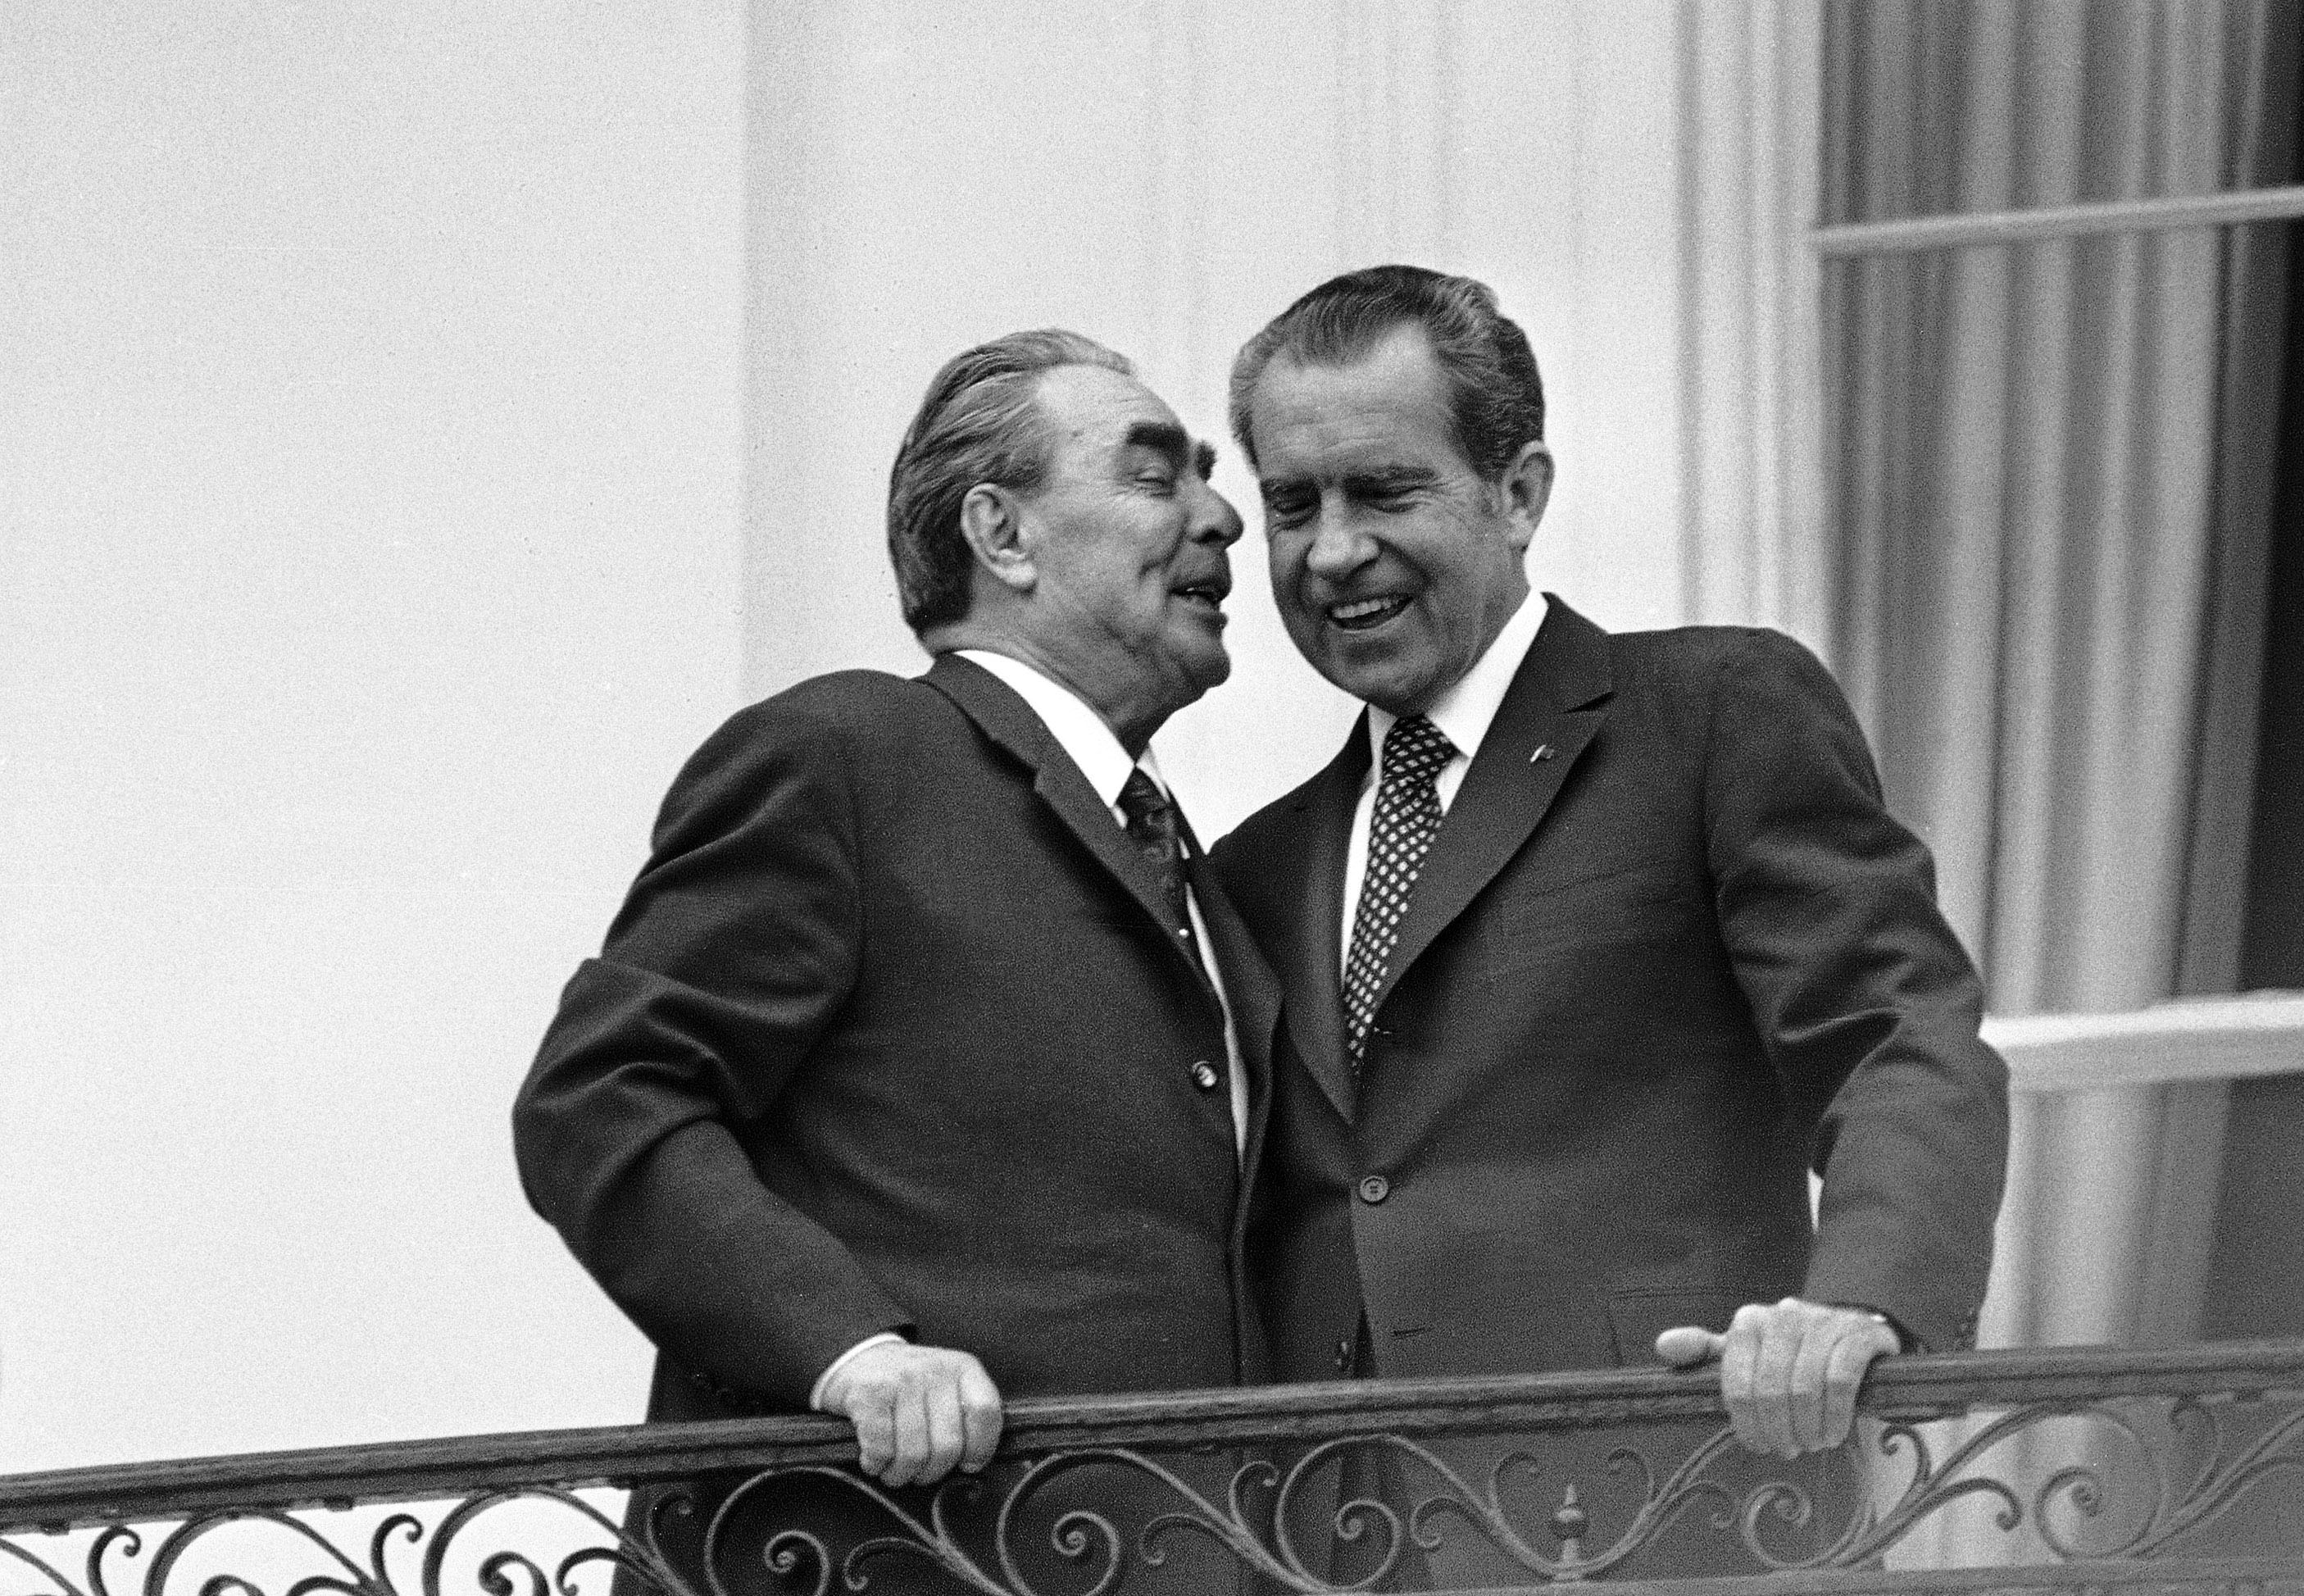 a study of the watergate scandal and the disgrace of president nixon Nixon and the watergate scandal creep, john mitchell's secret fund, watergate burglary, washington post, the watergate tapes, impeachment of president nixon, impact of watergate, new legislation lesson powerpoints.